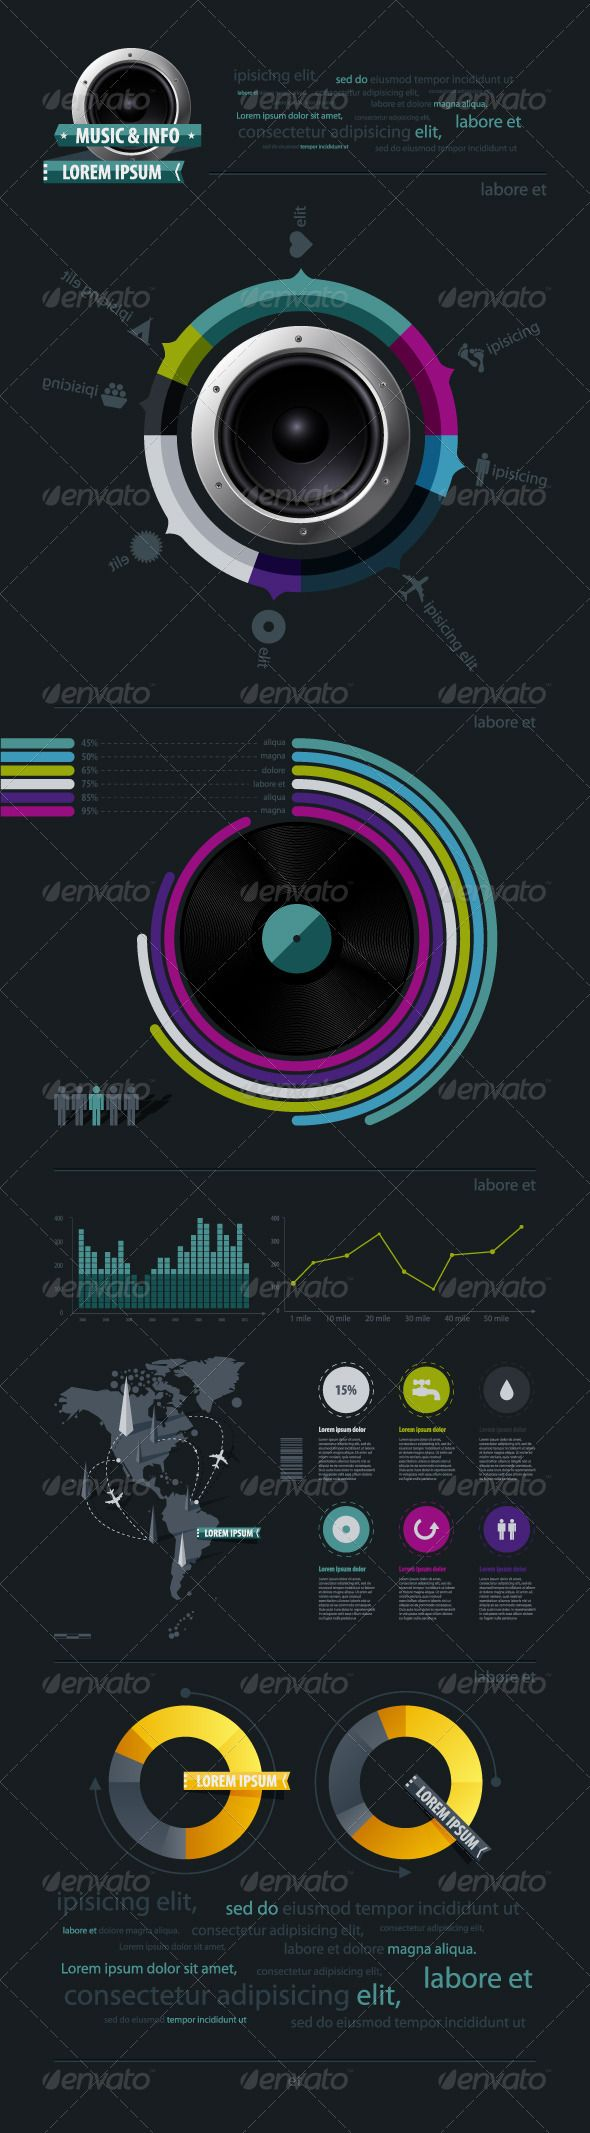 Infographic music elements with vinyl and speaker - Infographics  #infographic #graphic #design #graphicdesign #web #graph #stats #chart #statistic #pie #vector #eps #illustrator #speaker #creative #stylish